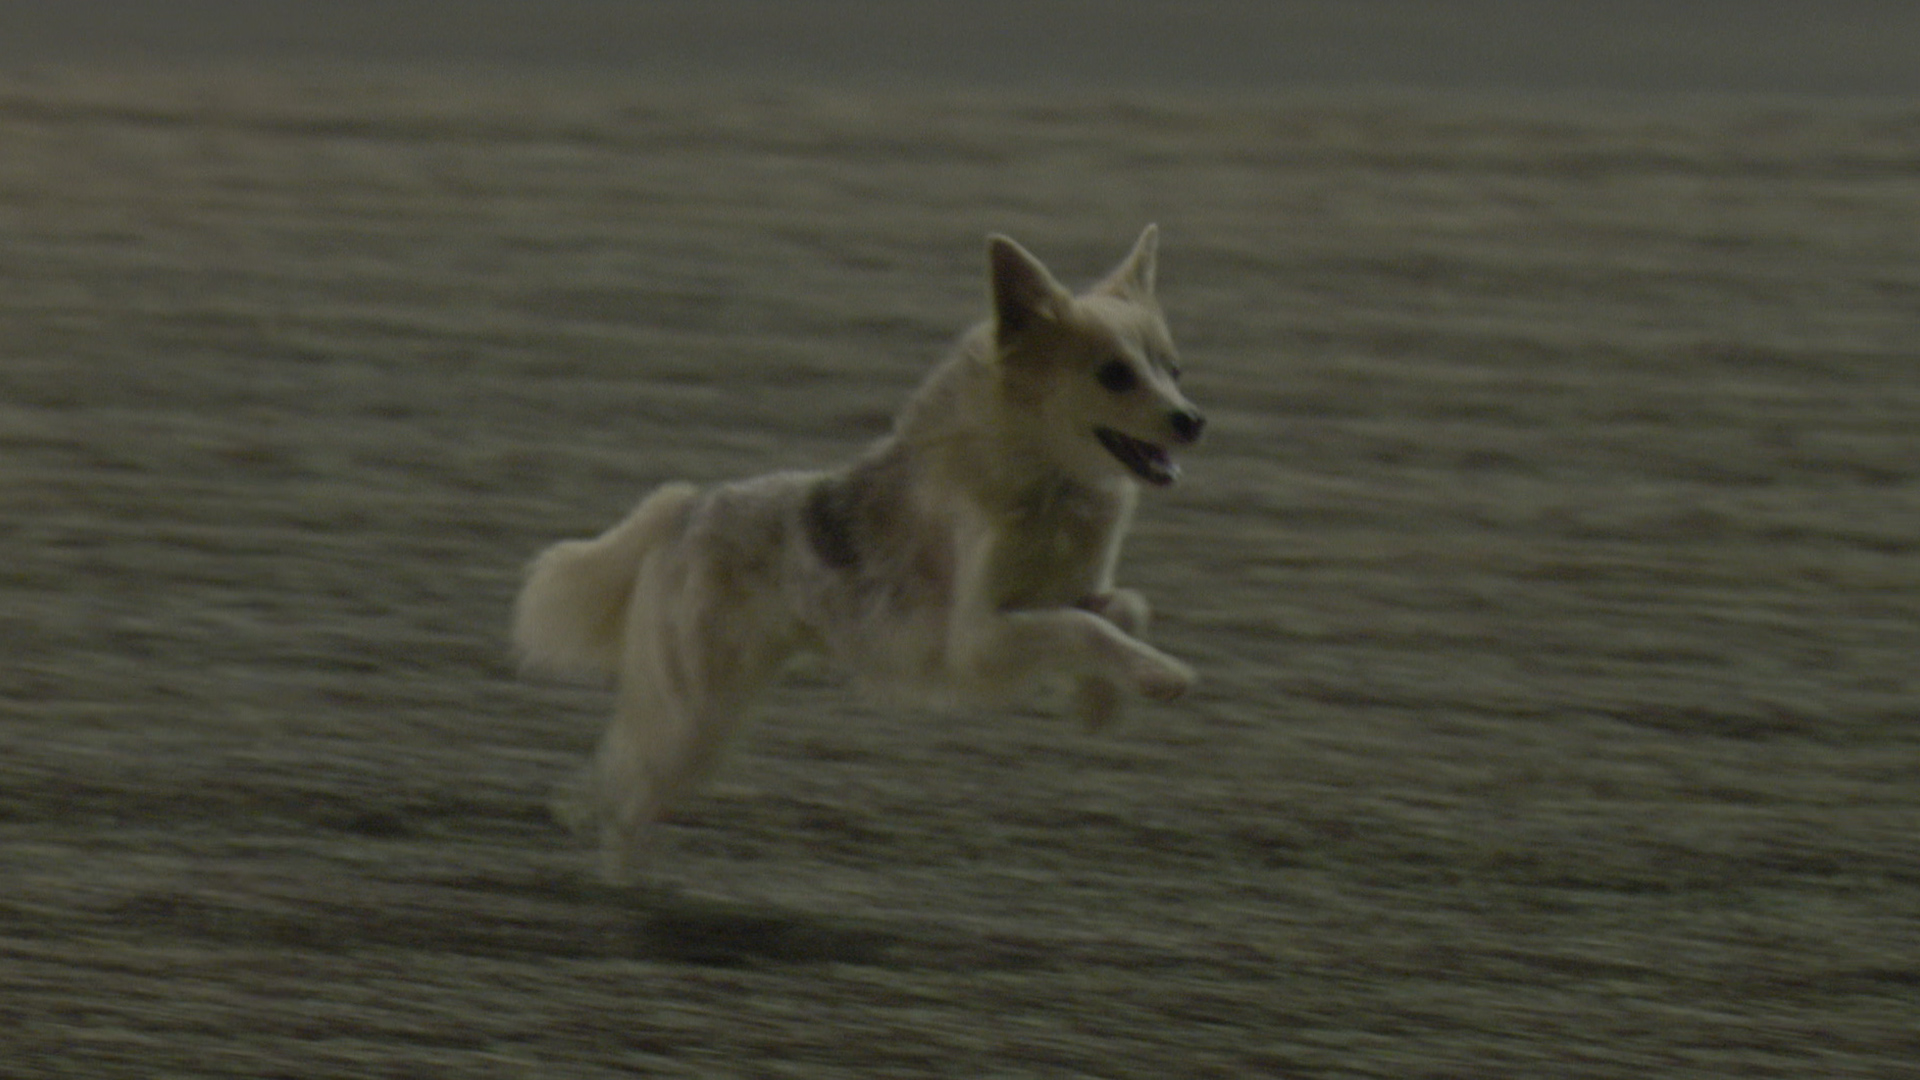 Bark-rain Grand Prix: Dog on track causes red flag in F1 practice